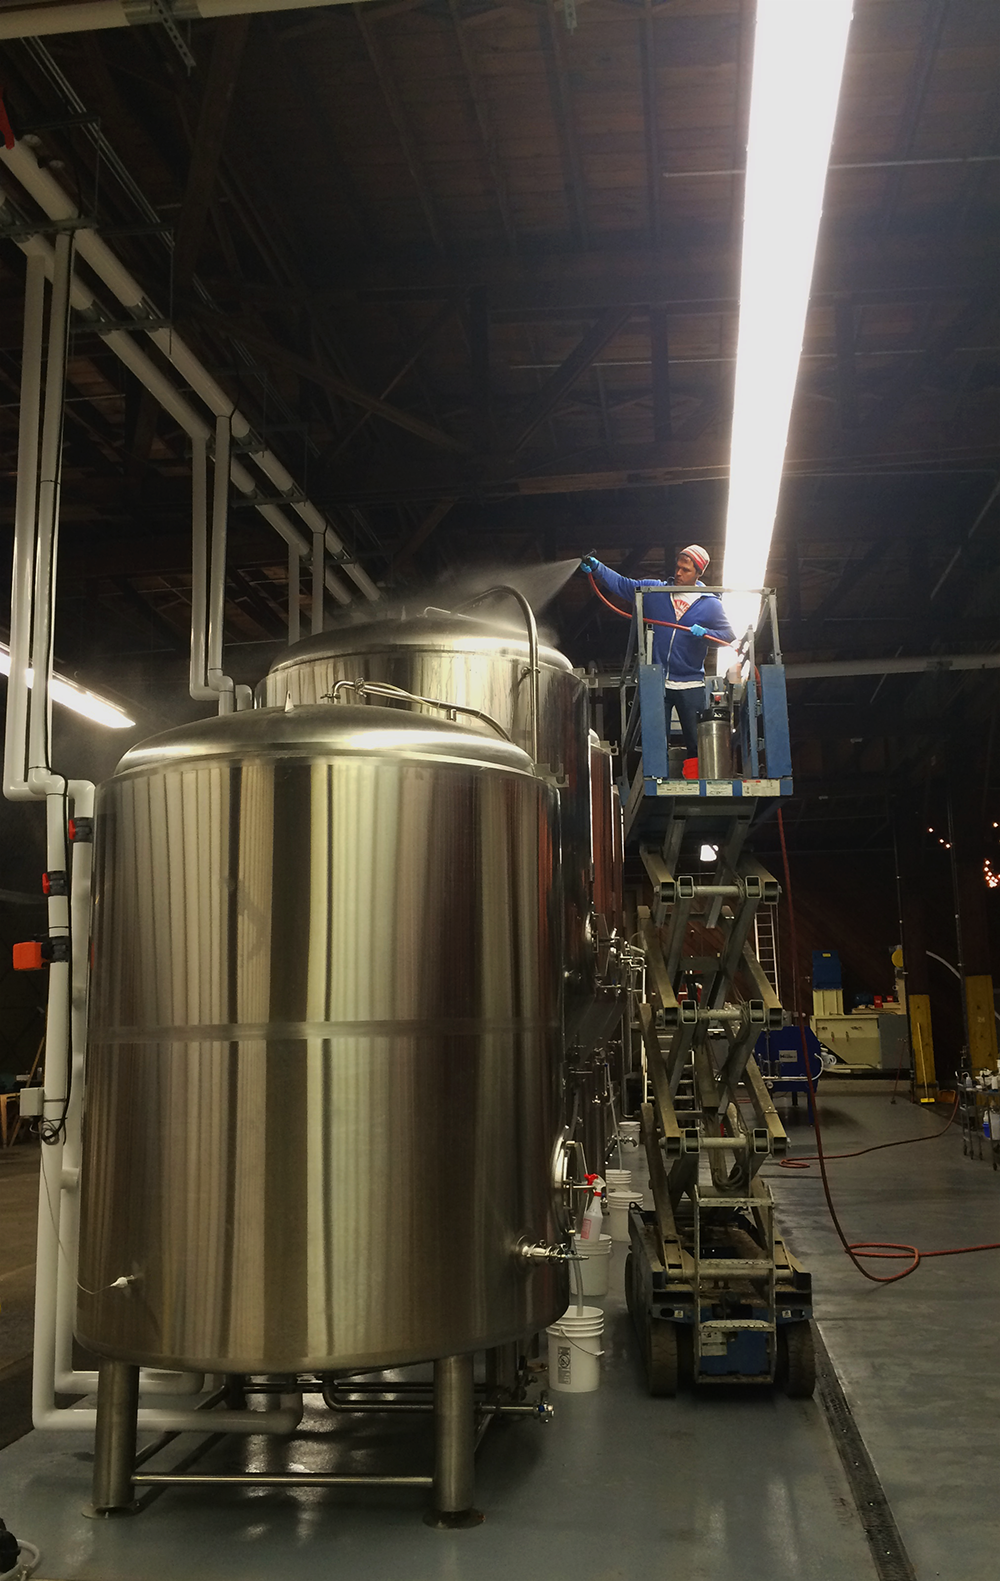 Brian Mercer, Brouwerij CEO & founder, cleaning the cutting edge, green brewing tanks